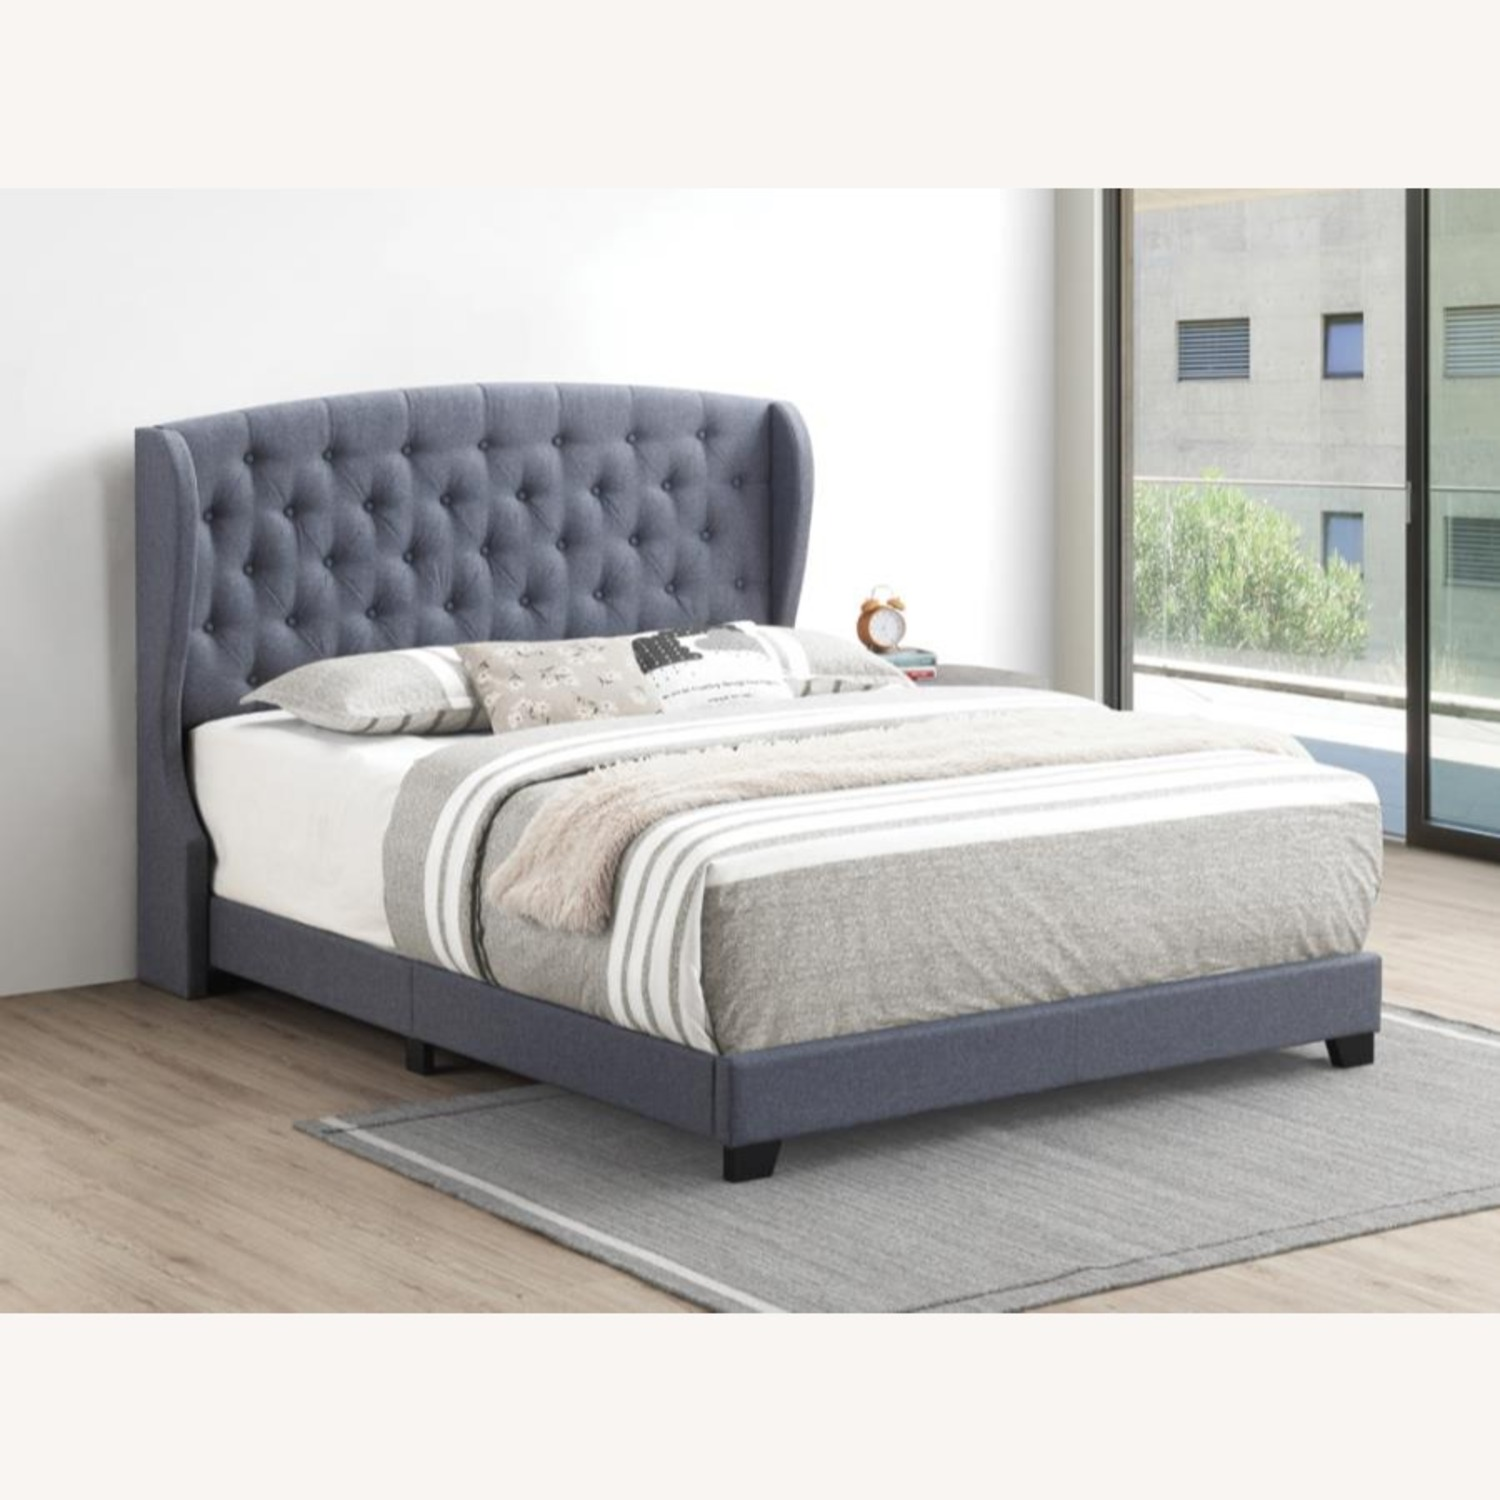 Full Bed In Grey Fabric W/ Demi-Wing Headboard - image-2